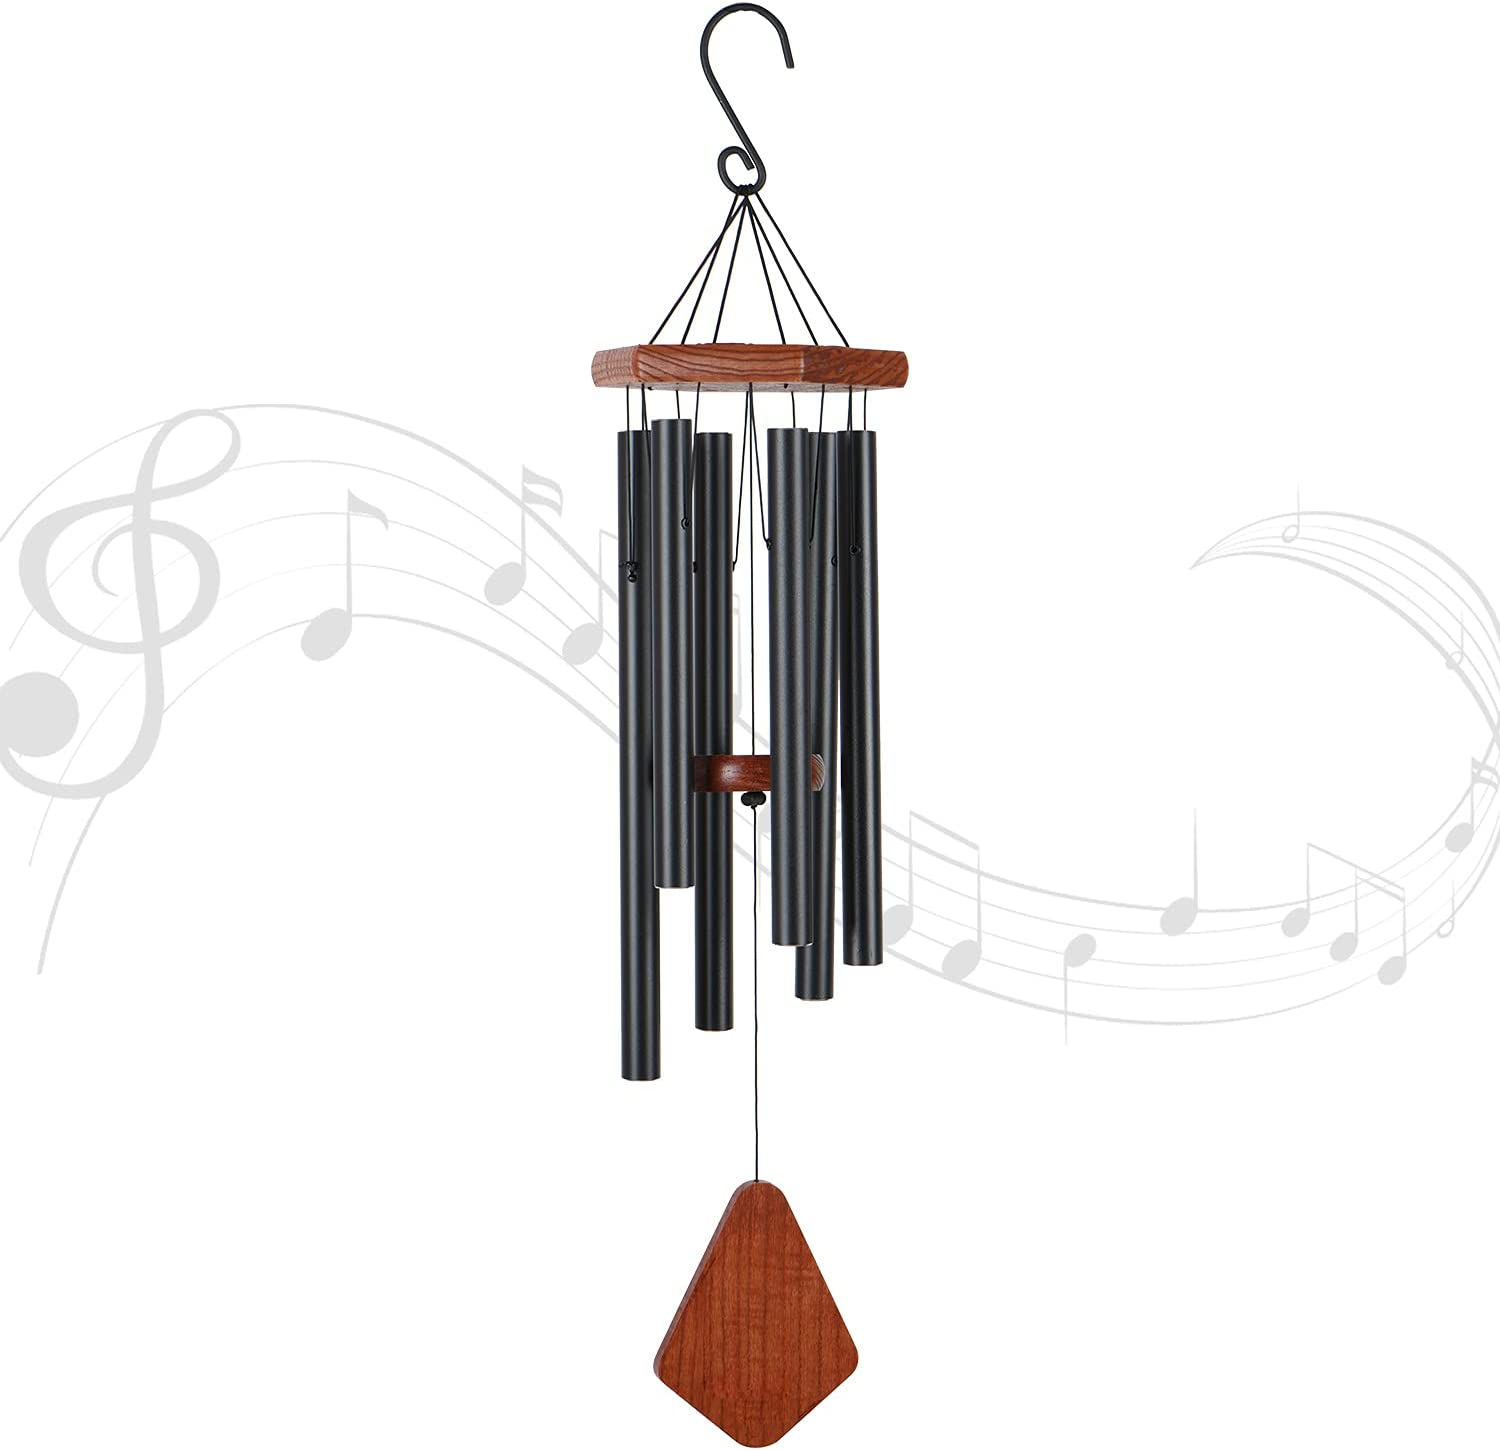 Voltogar Grande Tunes Wind Chimes for Windchime Outside with T Outlet SALE trend rank 6